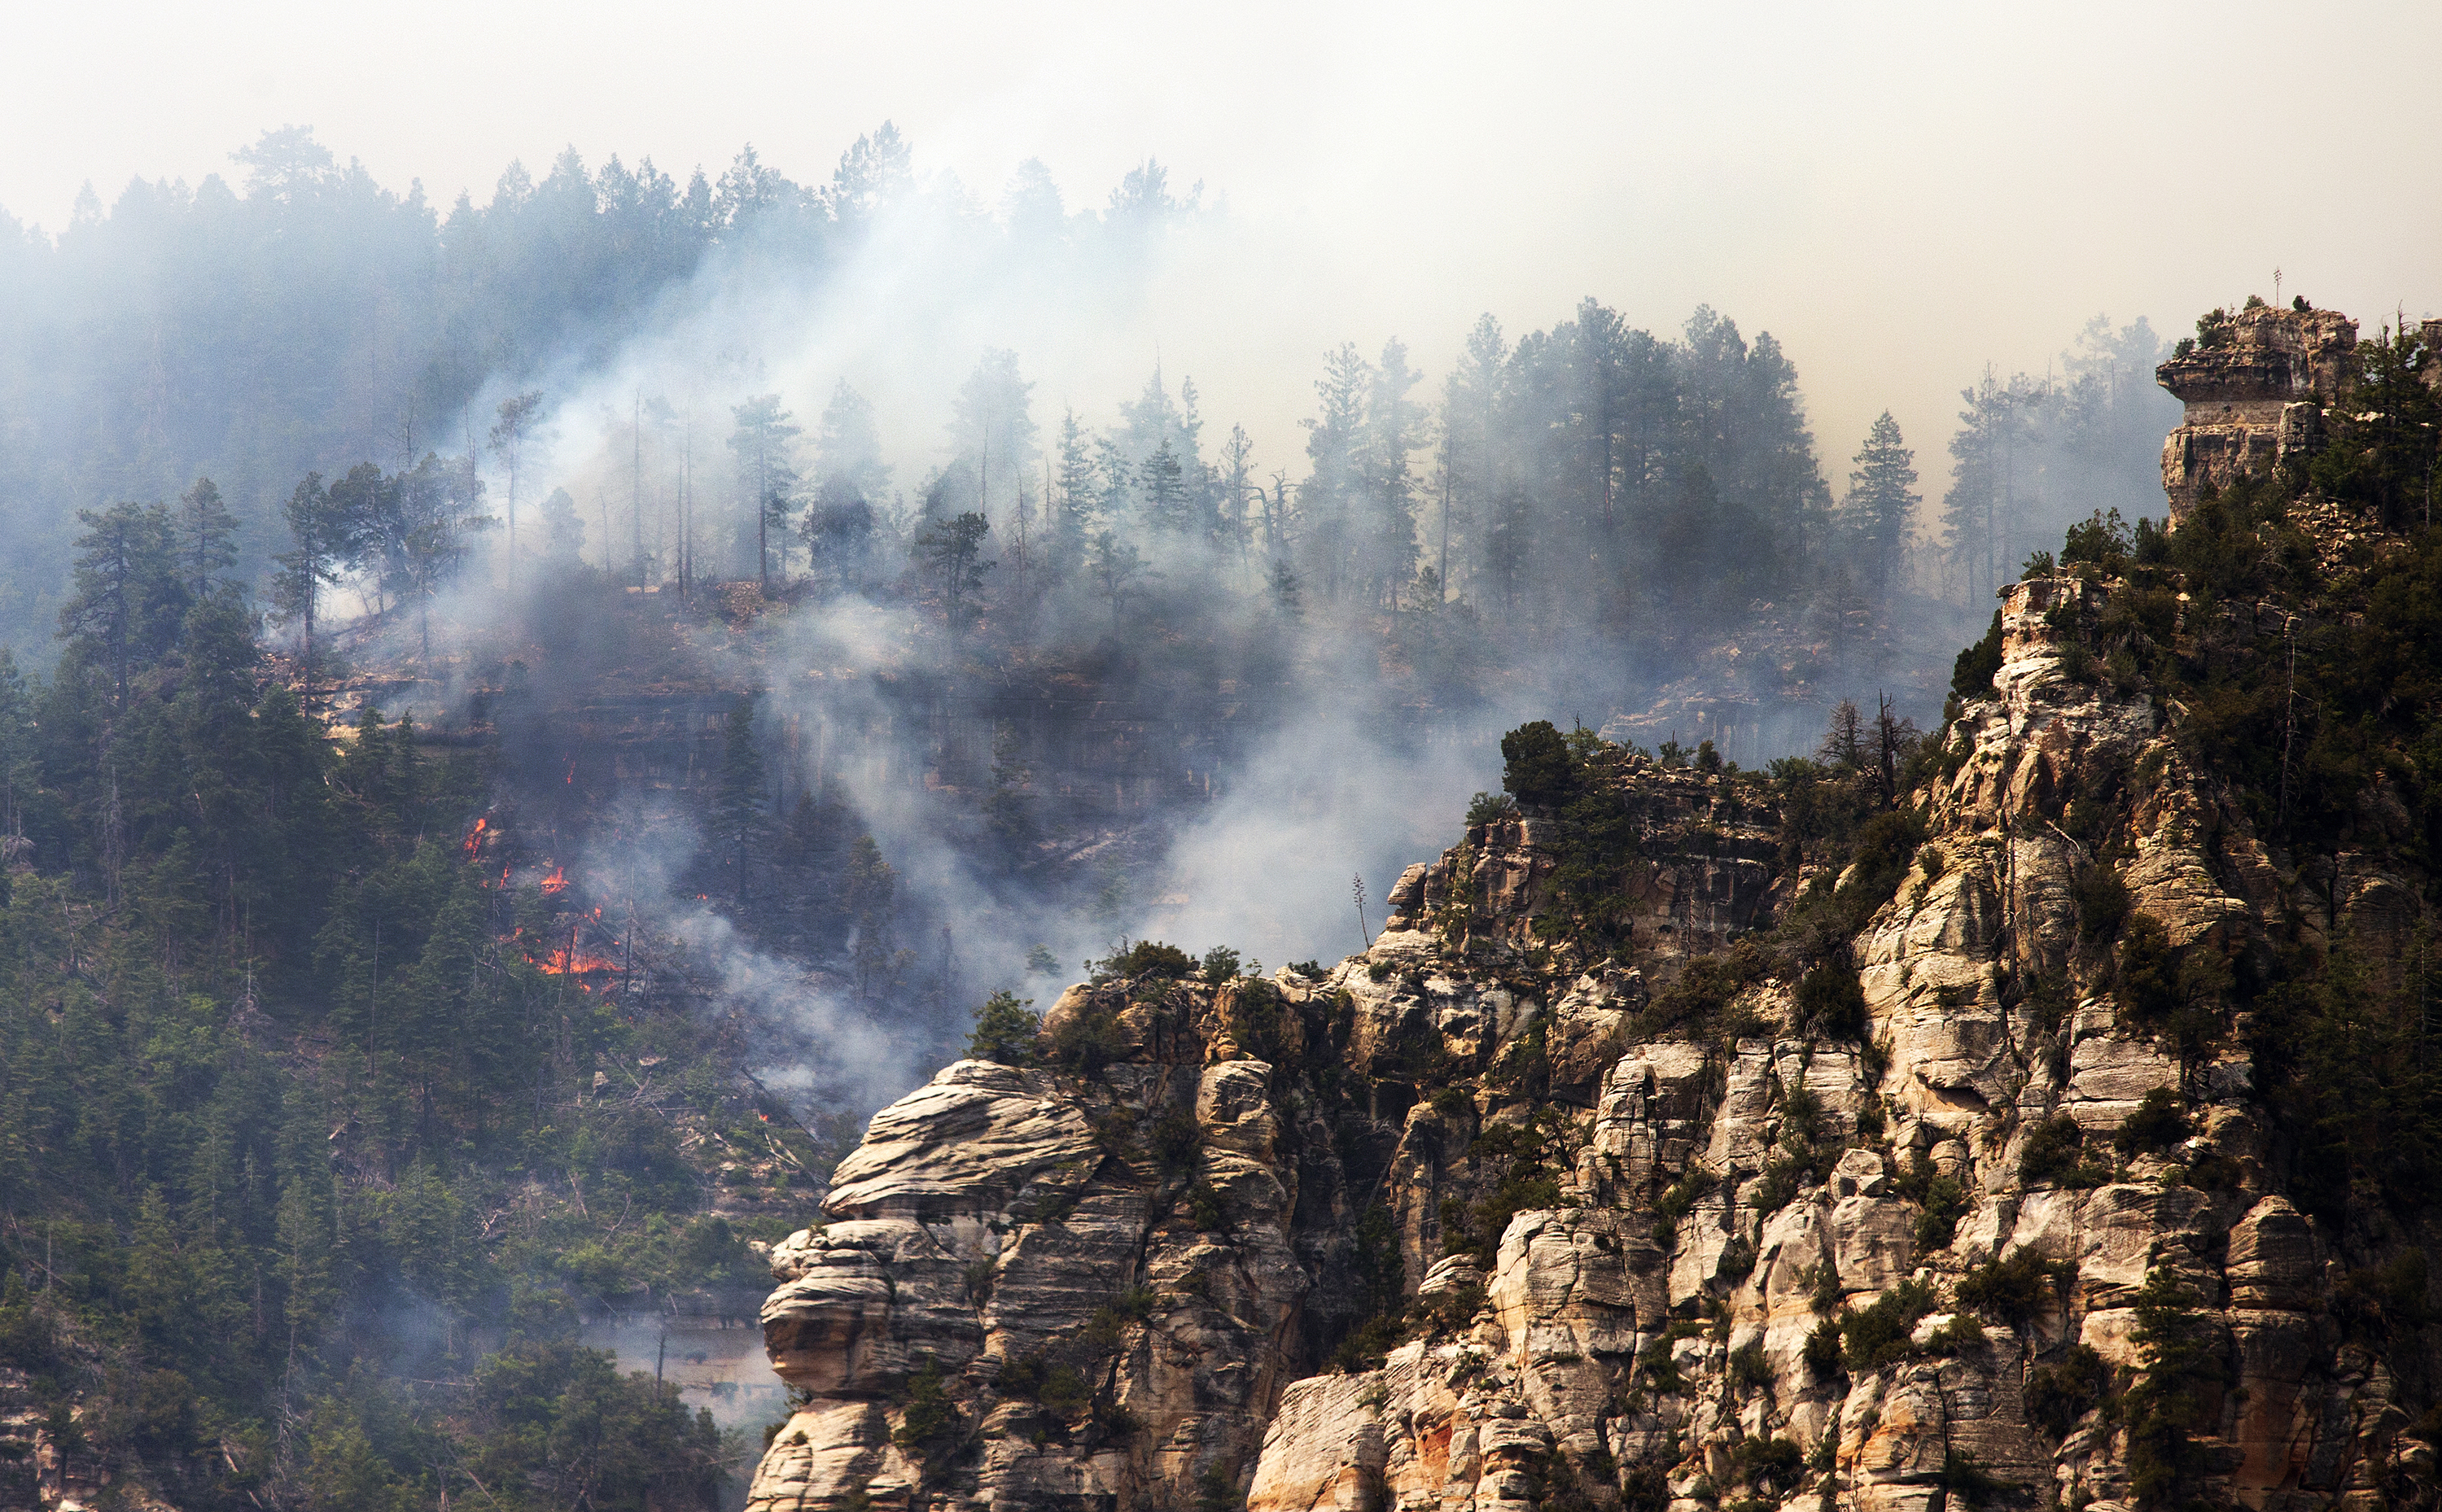 The Slide Fire burns near 89 A south of Flagstaff, Arizona on May 21, 2014.